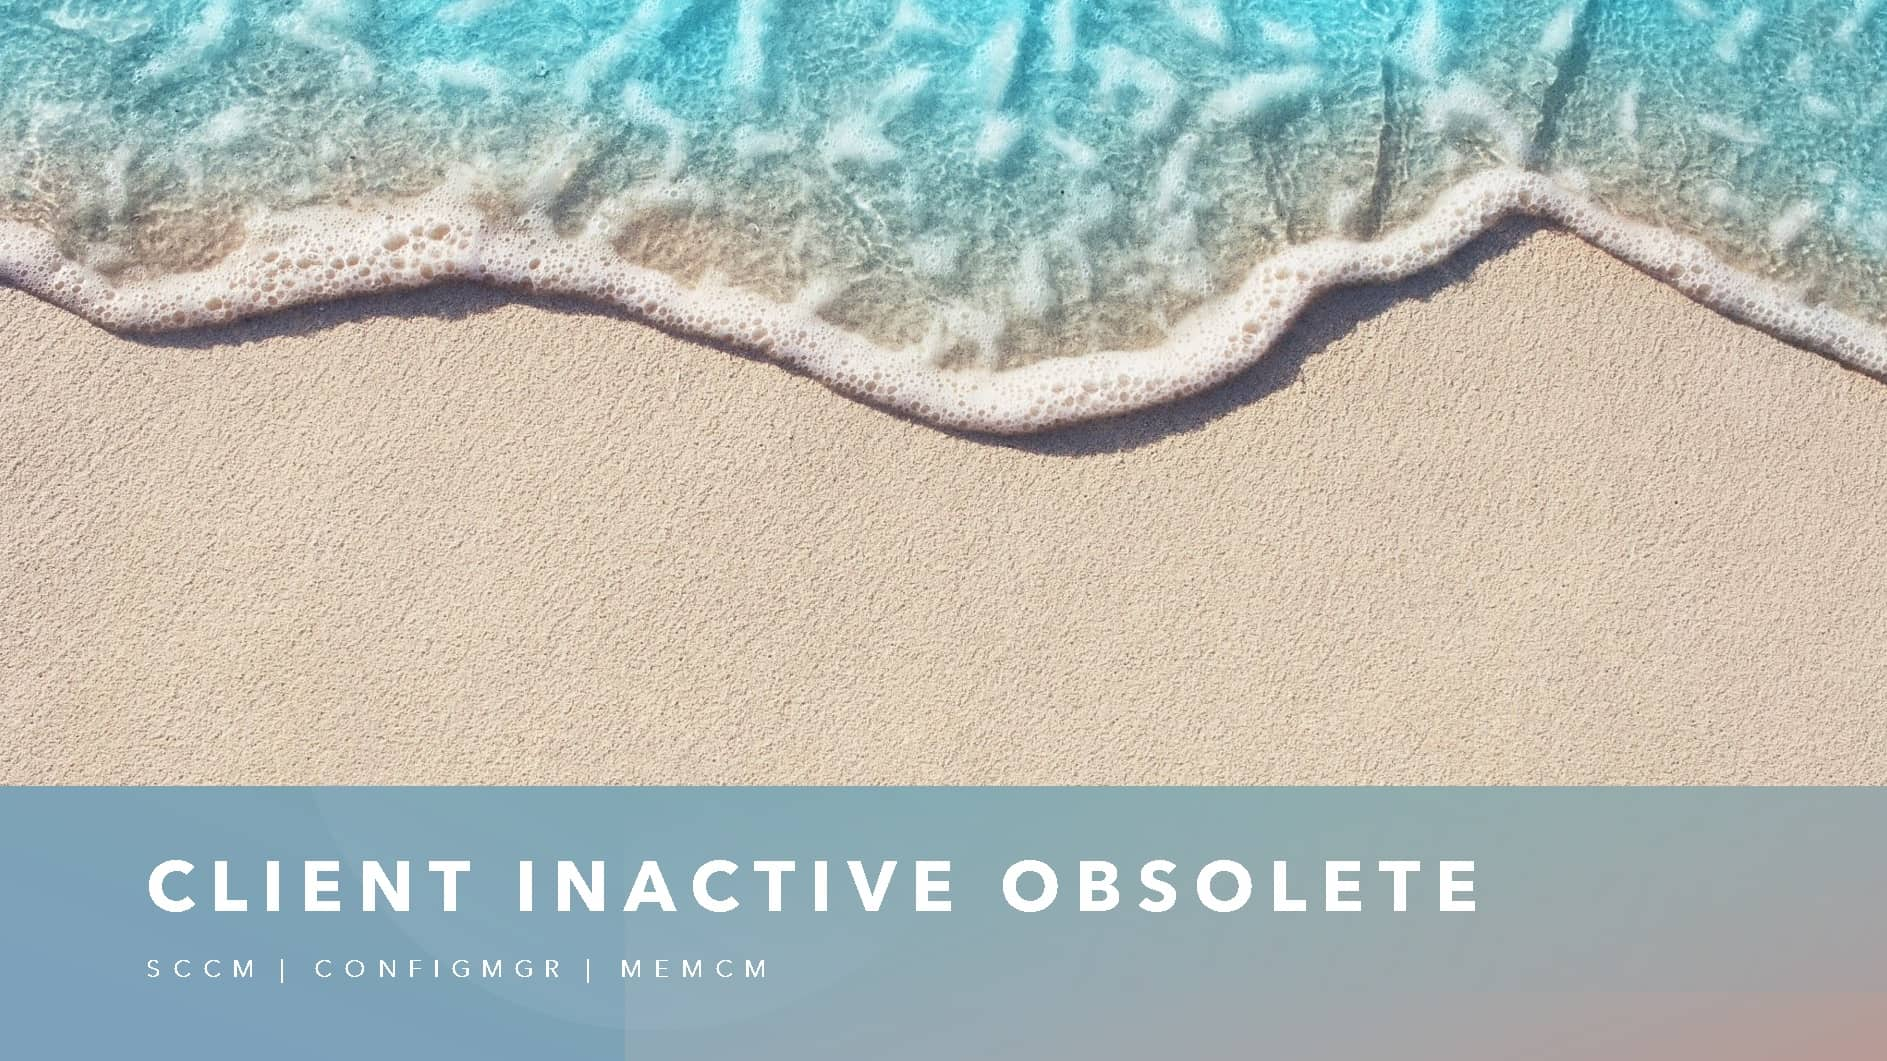 SCCM Client InActive Obsolete Status Using SQL Query